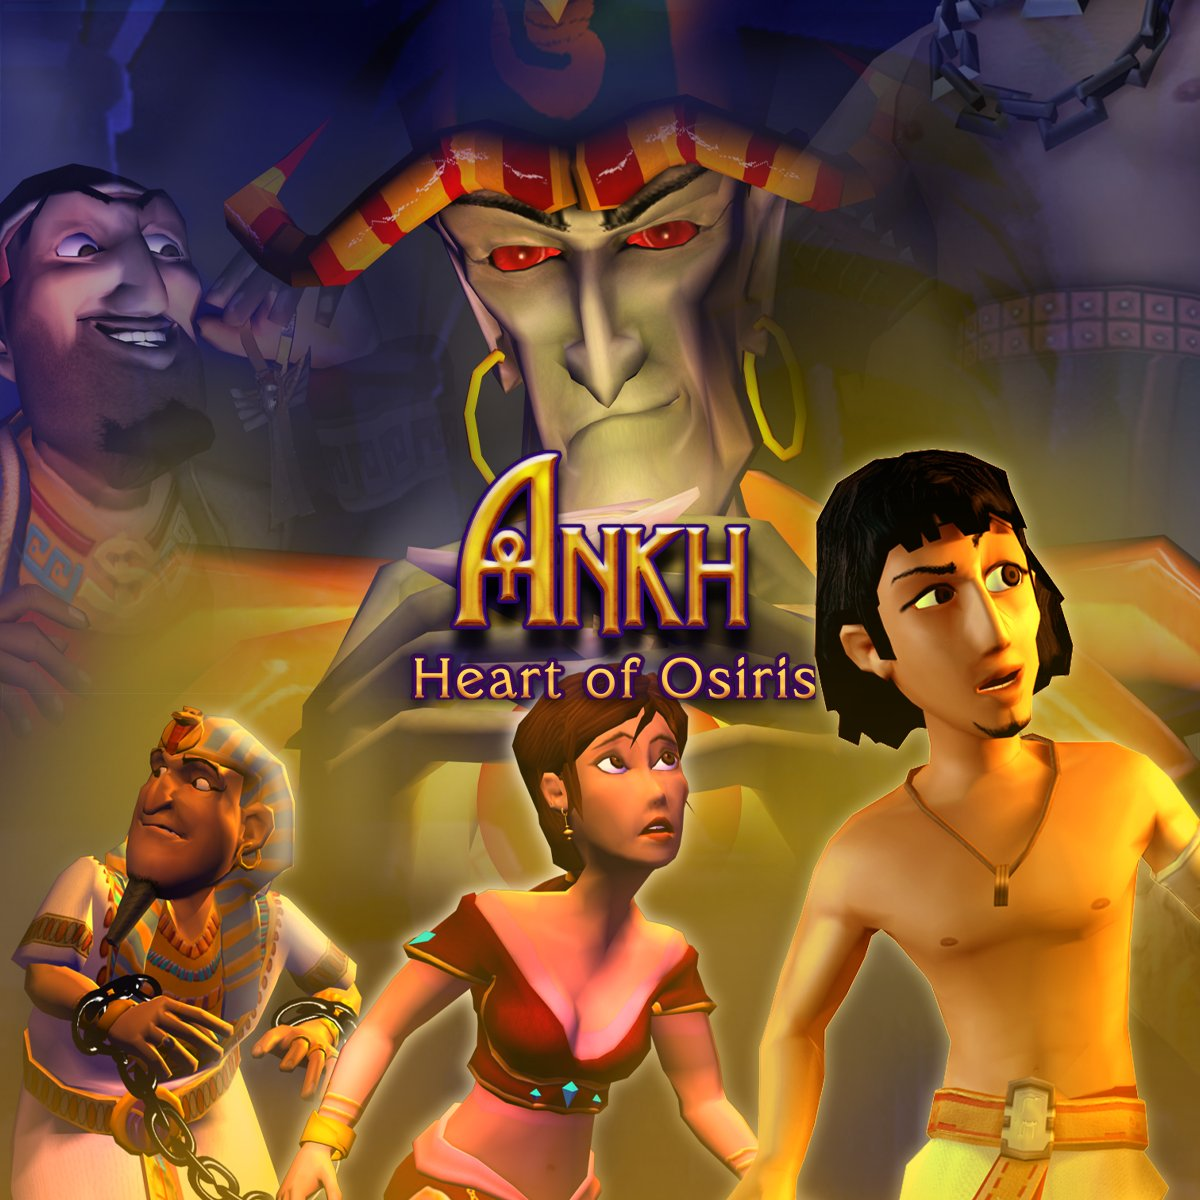 Two great classics from Strategy First make a DRM-free comeback on https://t.co/TiMFdAcy7Z!   Follow the adventures of Assil and get both Ankh 2: Heart of Osiris & Ankh 3 : Battle of the Gods –75% off 💰  👉 https://t.co/HrKA0ylOVI 💜 https://t.co/0h1gAvrR6k